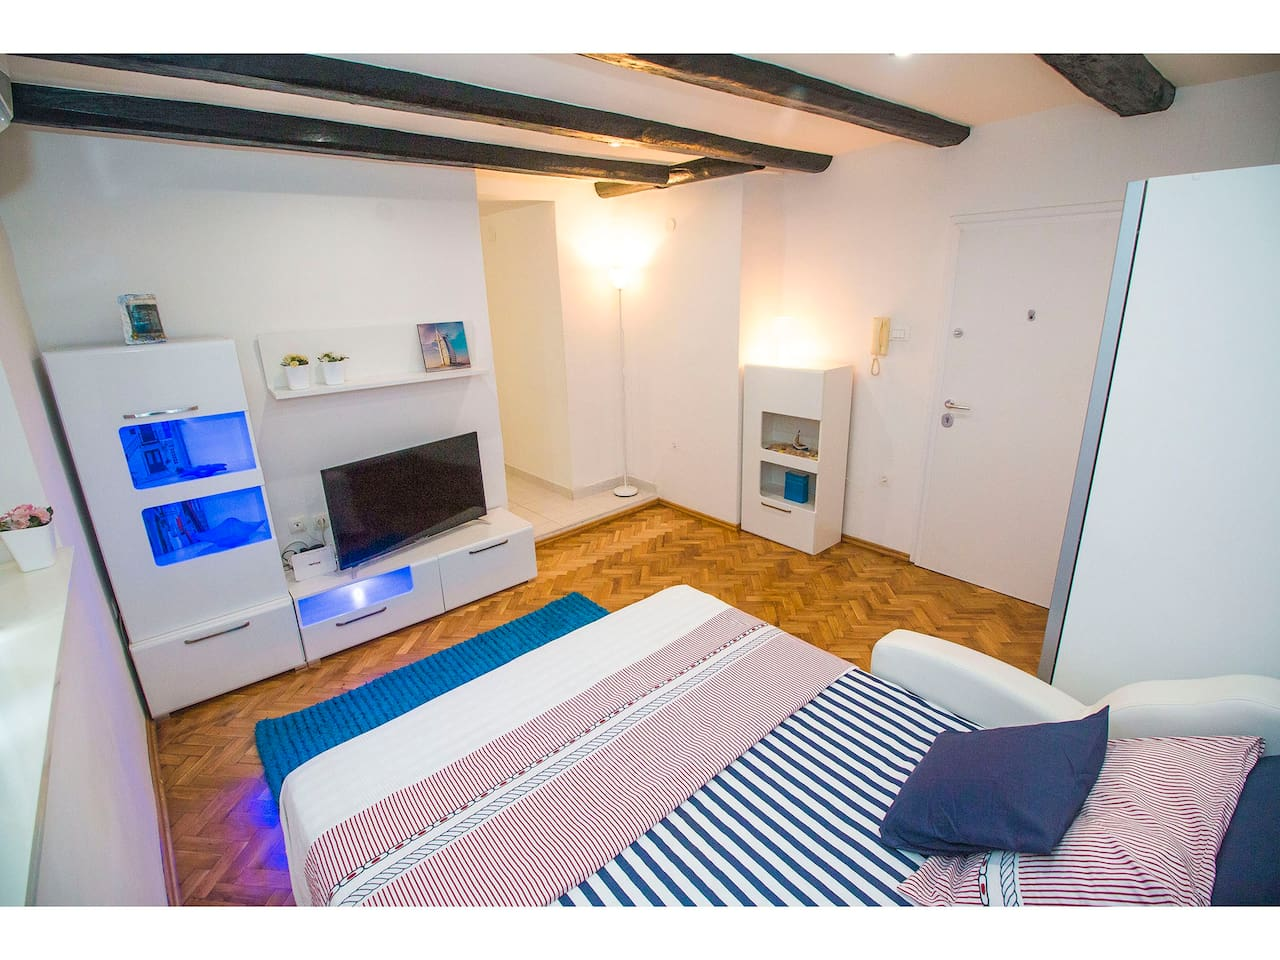 Studio apartment in the very center of the Split, less than 5 minutes walk from the historic center (Diocletian's Palace) and promenade Riva